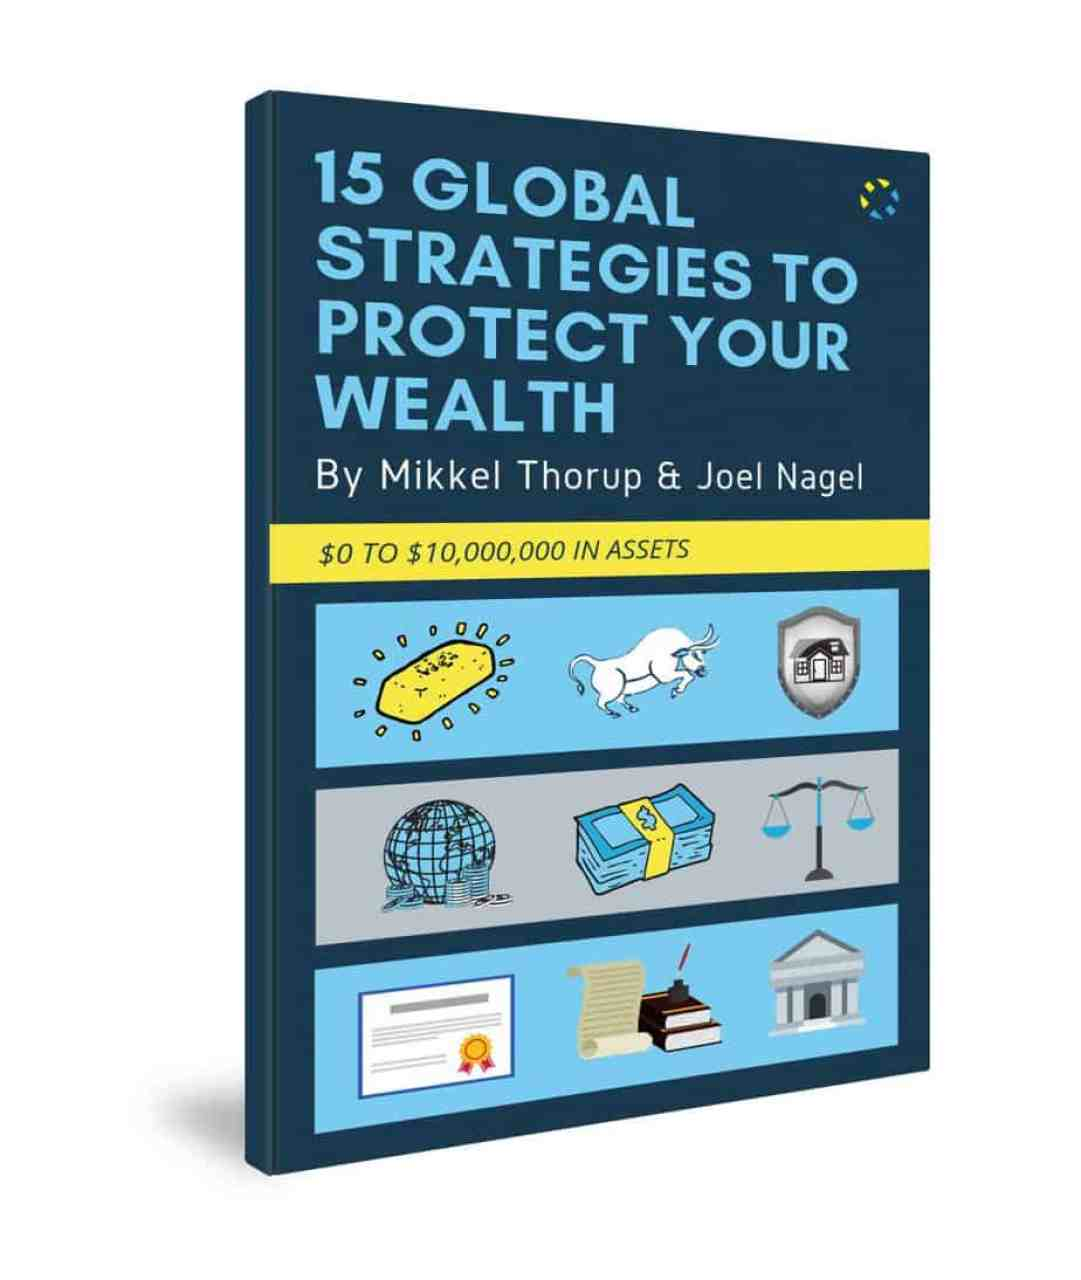 15 Global Strategies To Protect Your Wealth - The Expat Money Show